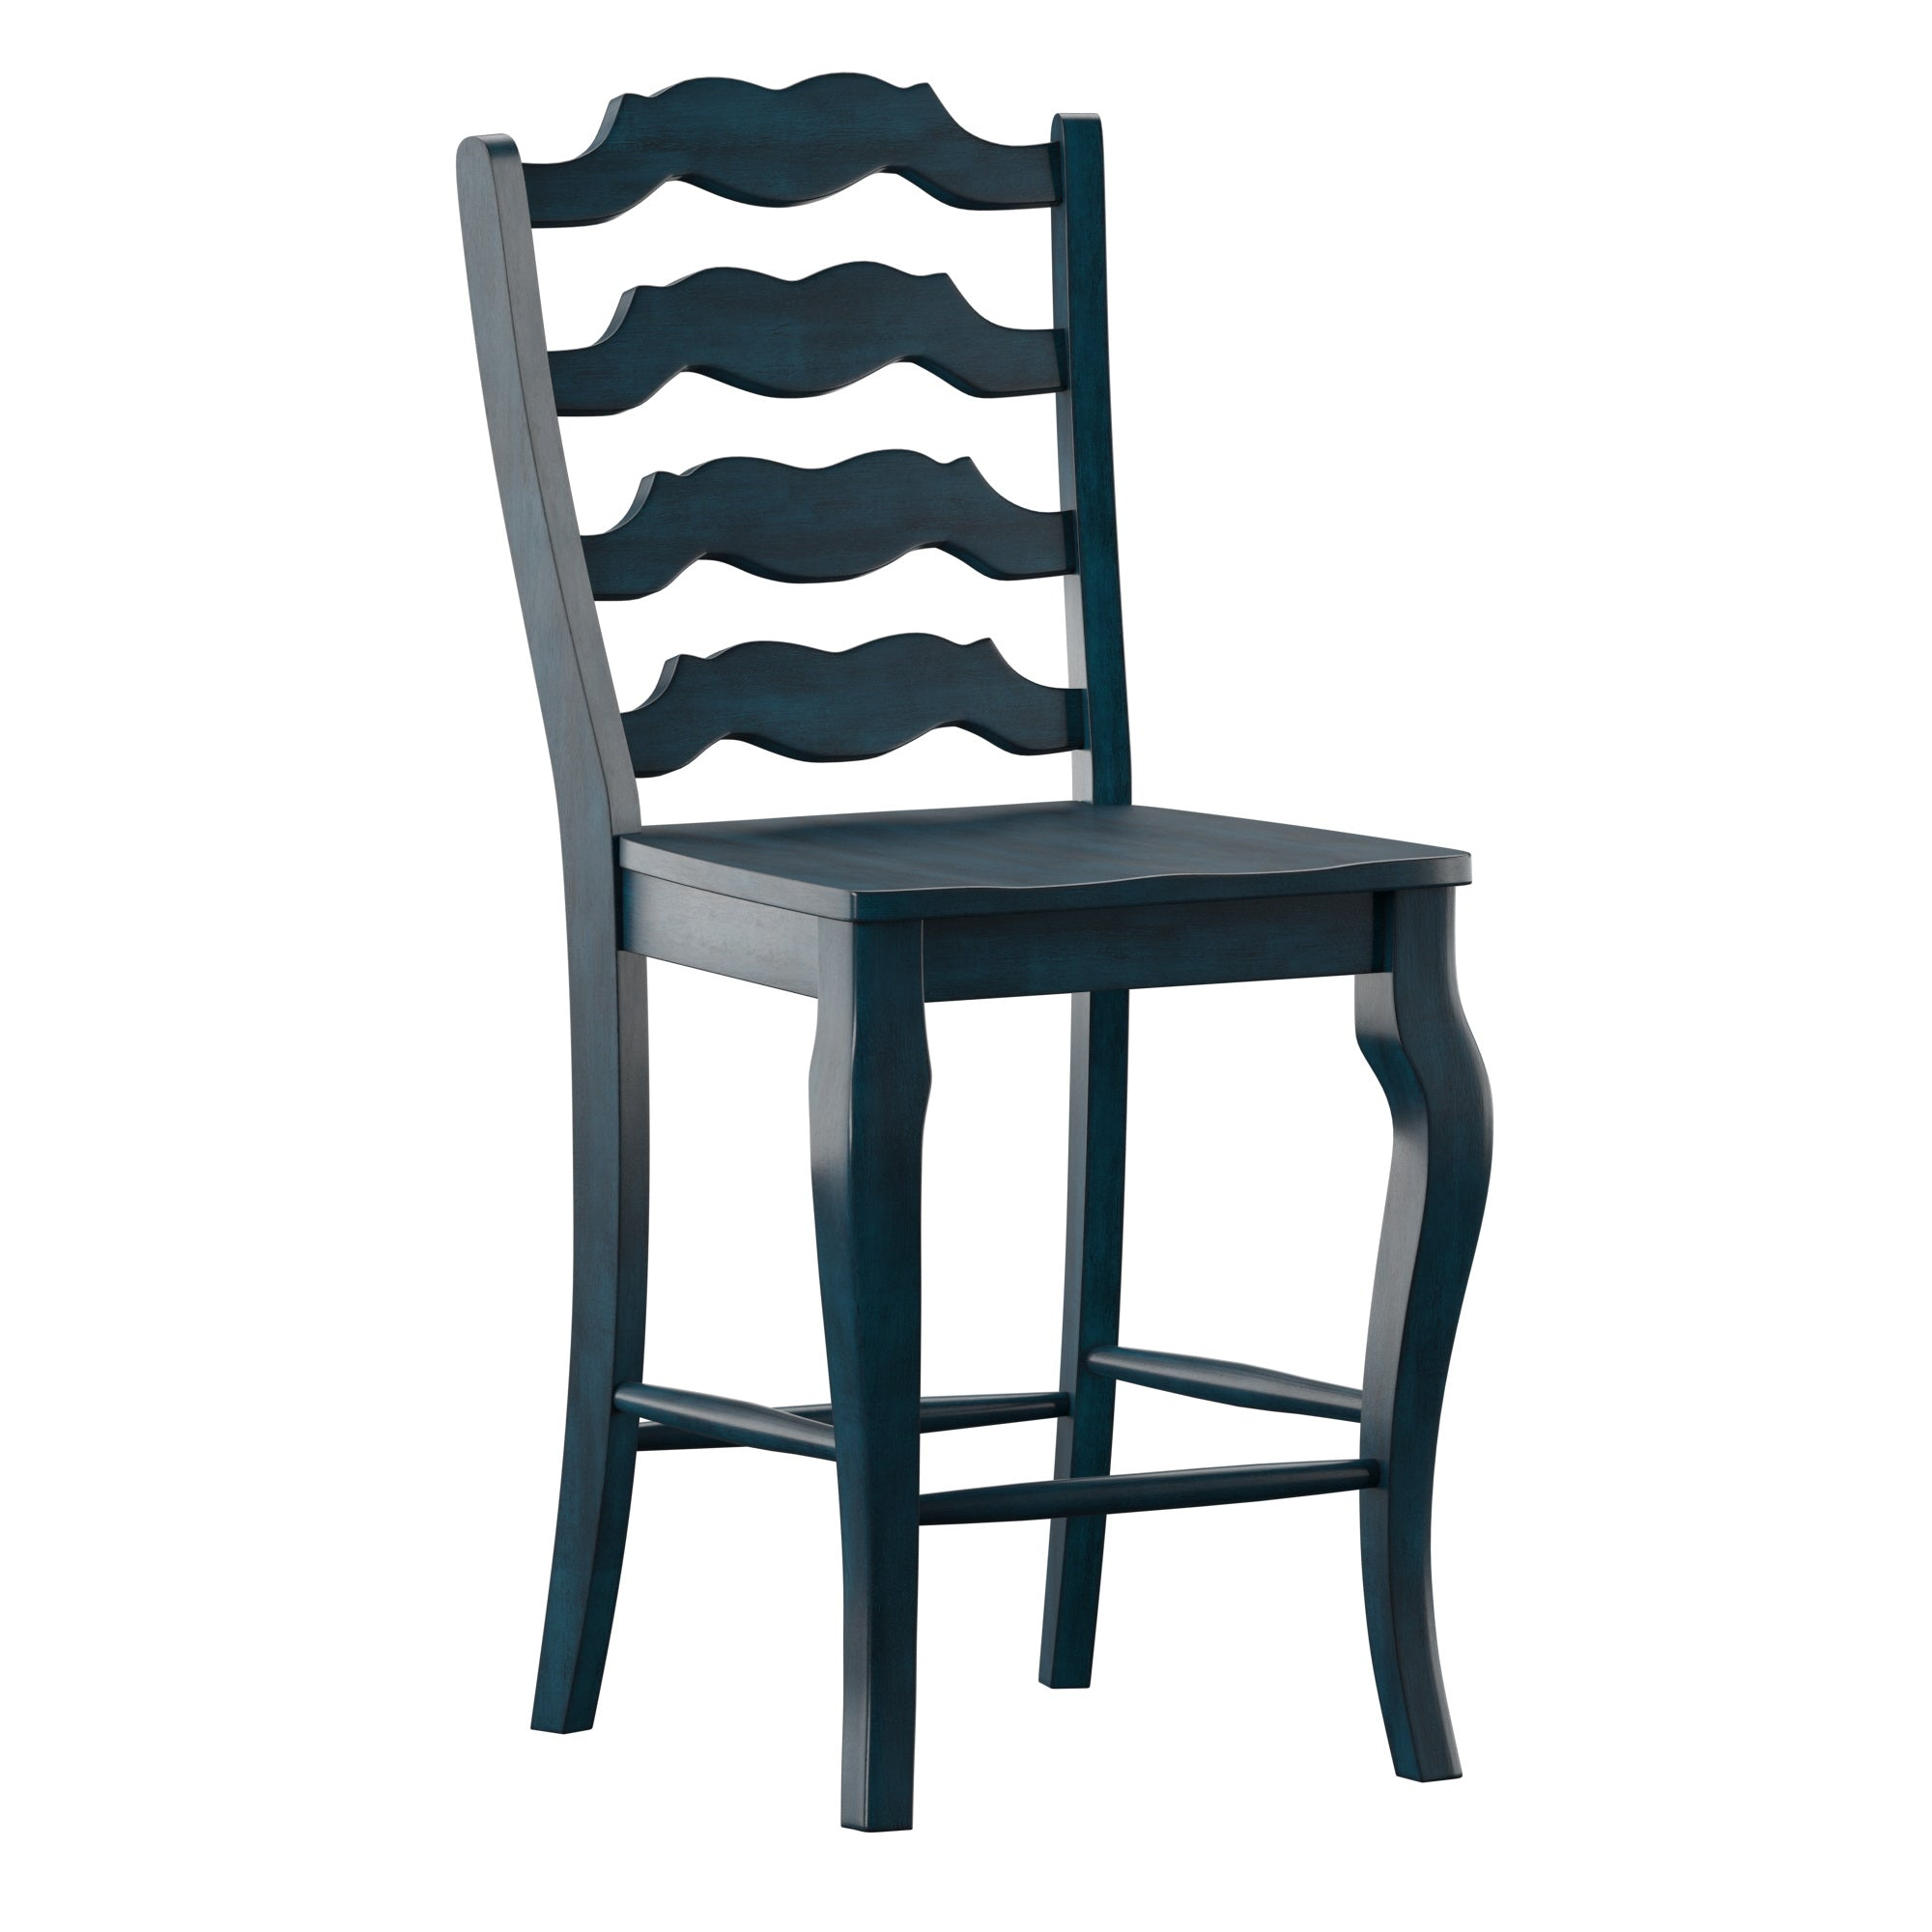 French Ladder Back Wood Counter Chair (Set of 2)